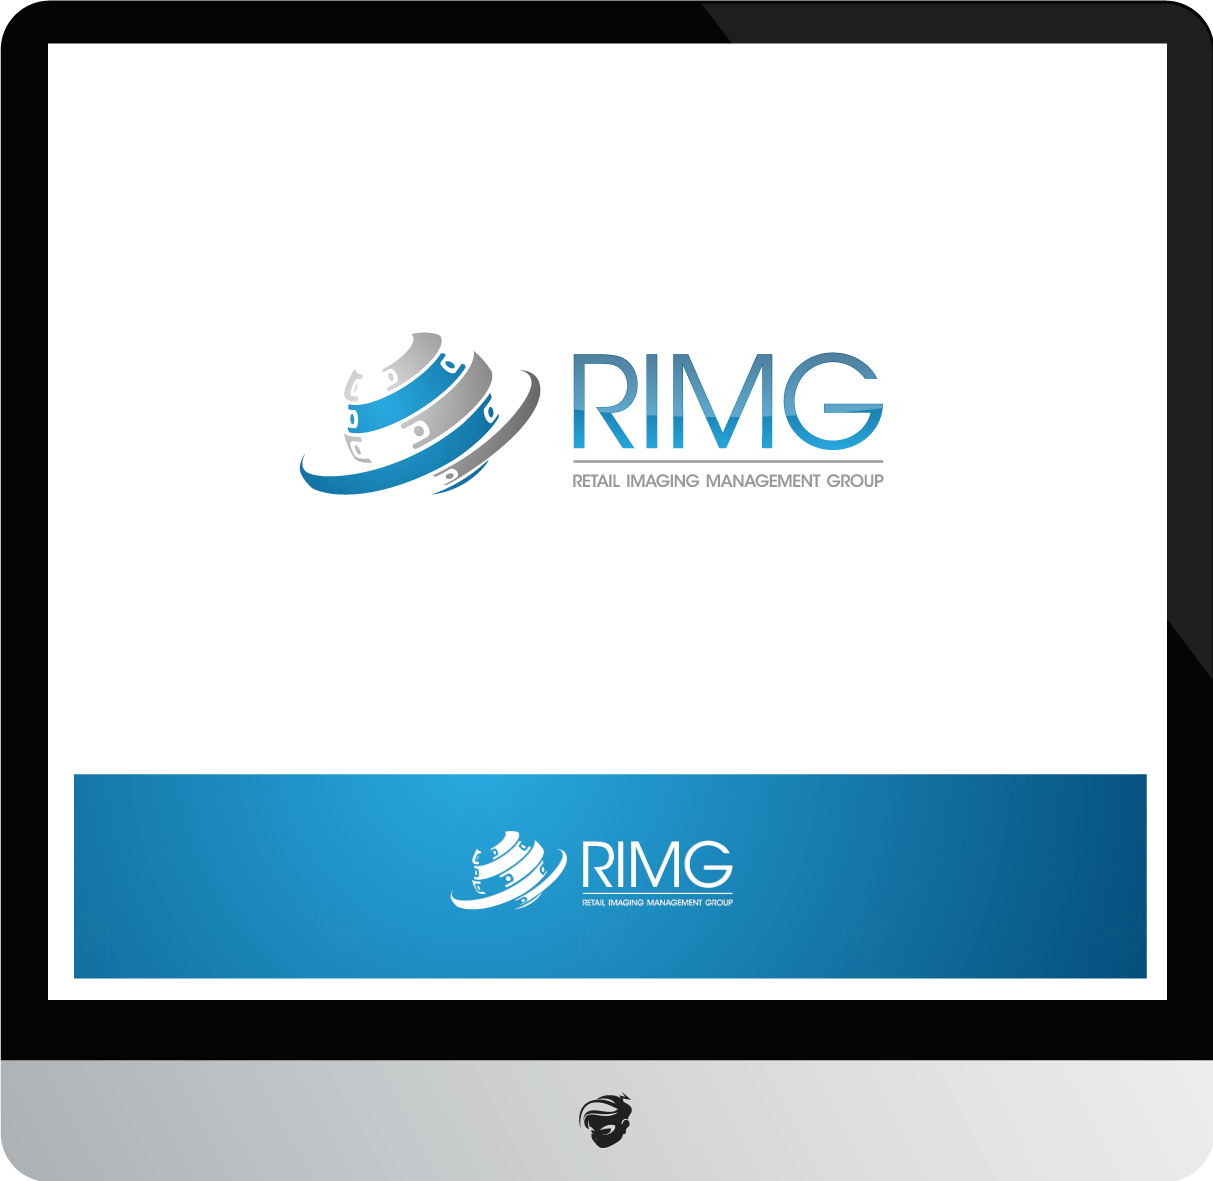 Logo Design by zesthar - Entry No. 107 in the Logo Design Contest Creative Logo Design for Retail Imaging Management Group (R.I.M.G.).